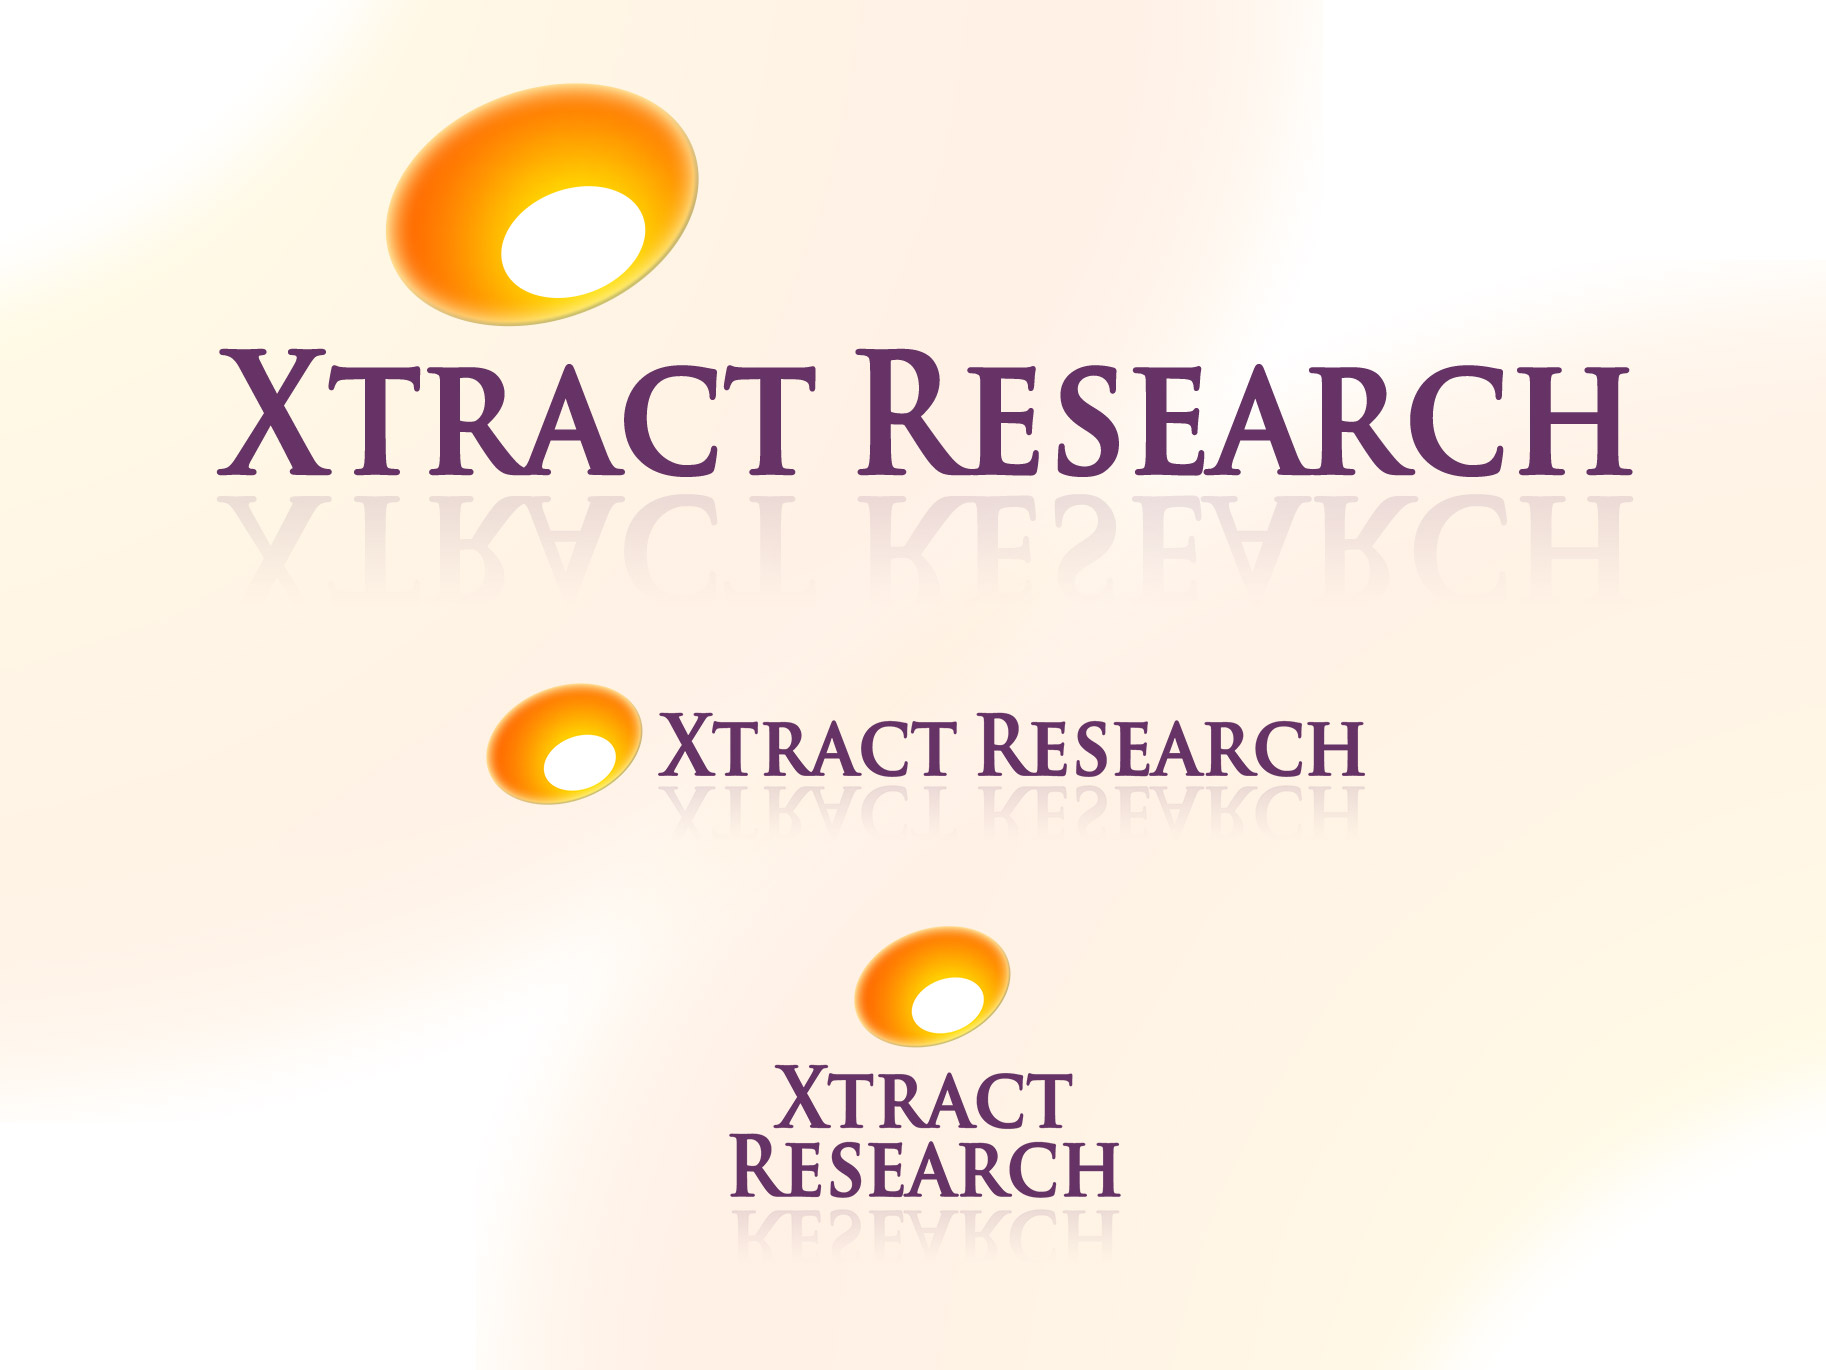 Xtract Logo & Usage Guidelines